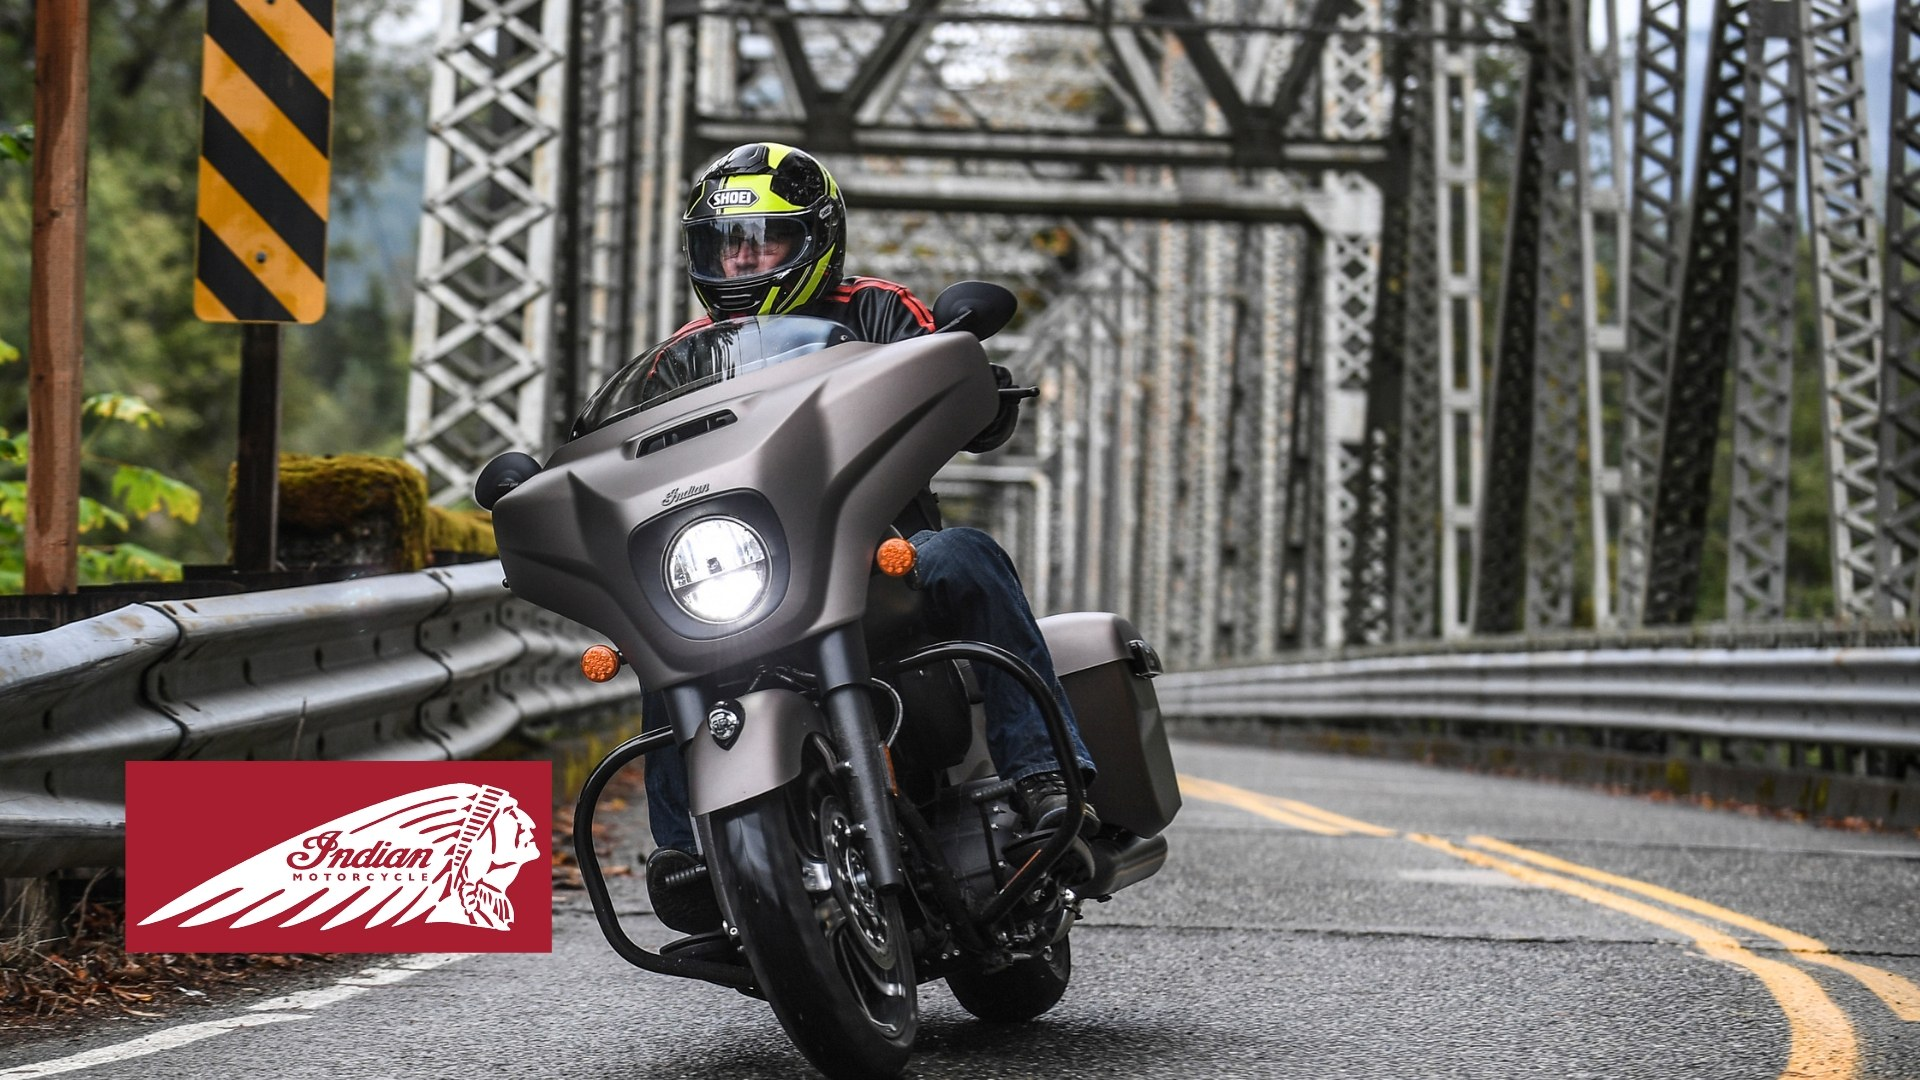 Schedule your Ride on a new 2019 Indian